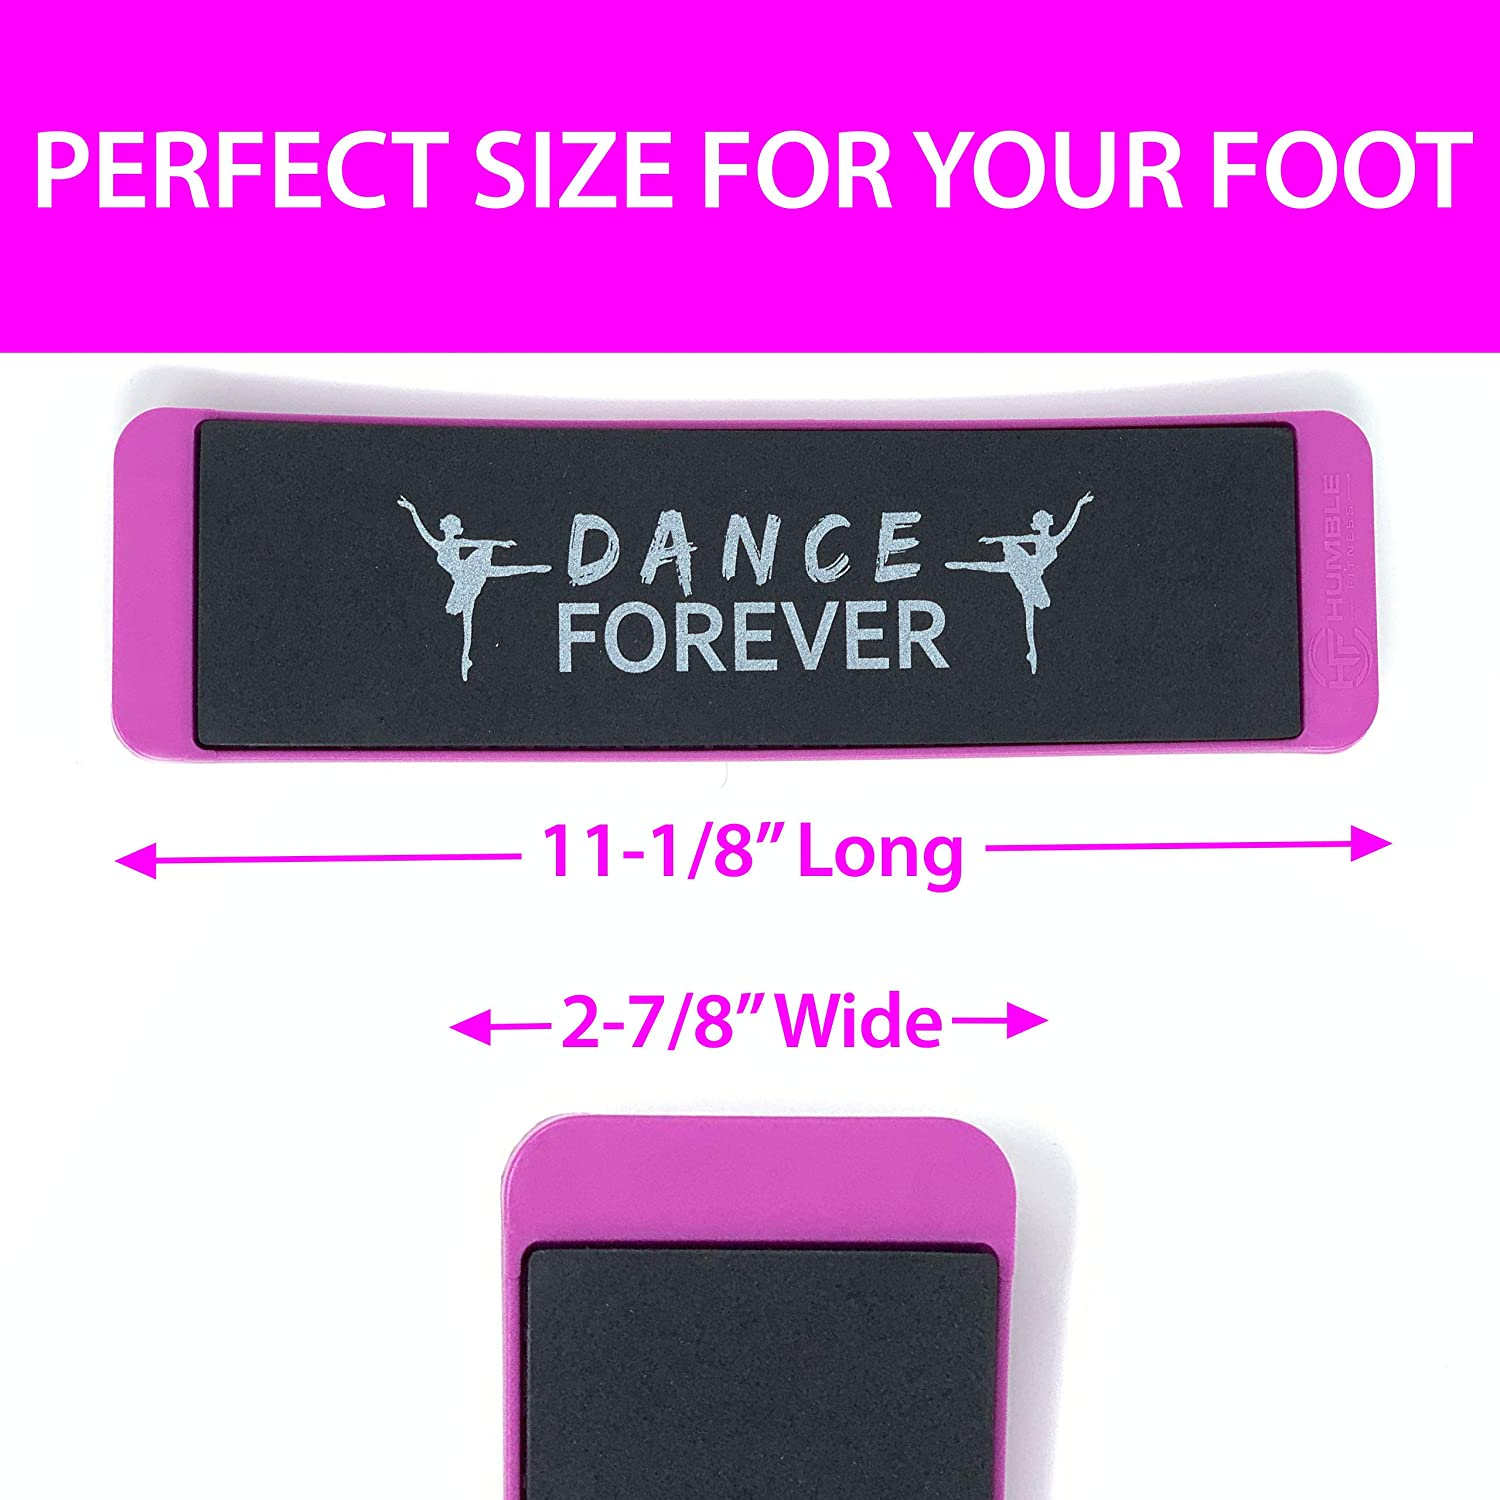 Ballet Turning Boards for Improving Balance and Turns|Figure Skating and Dance Training Equipment|Gymnastic Balance Equipment and Turning Boards Humble Fitness Turning Boards for Dancers